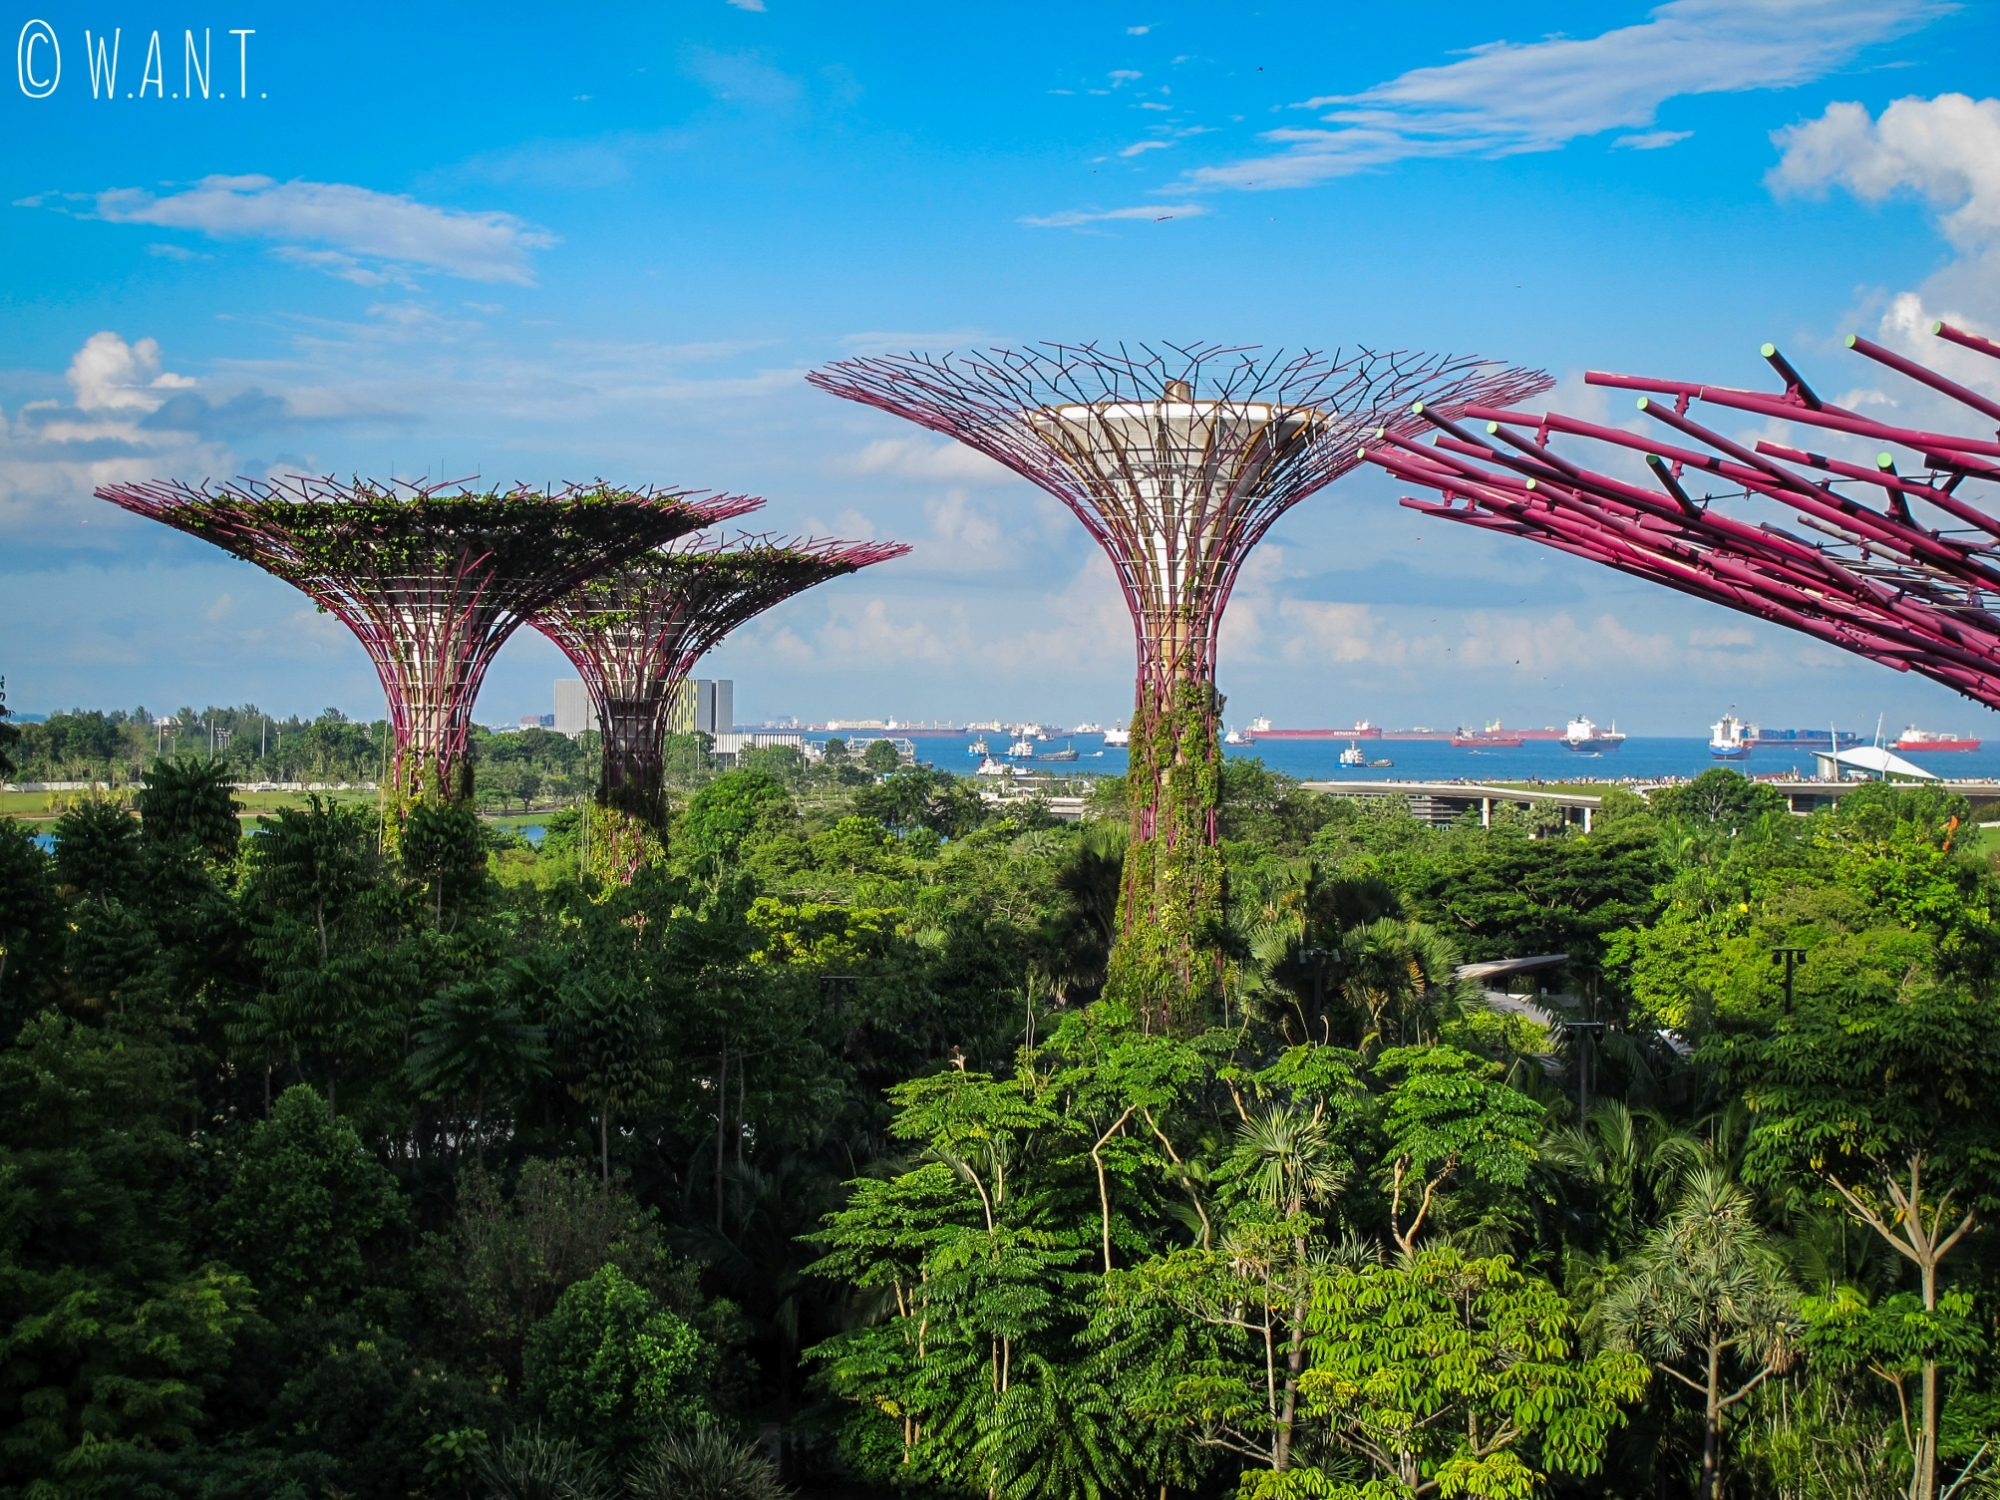 Les Supertrees de Garden by the bay servent de support pour la végétation